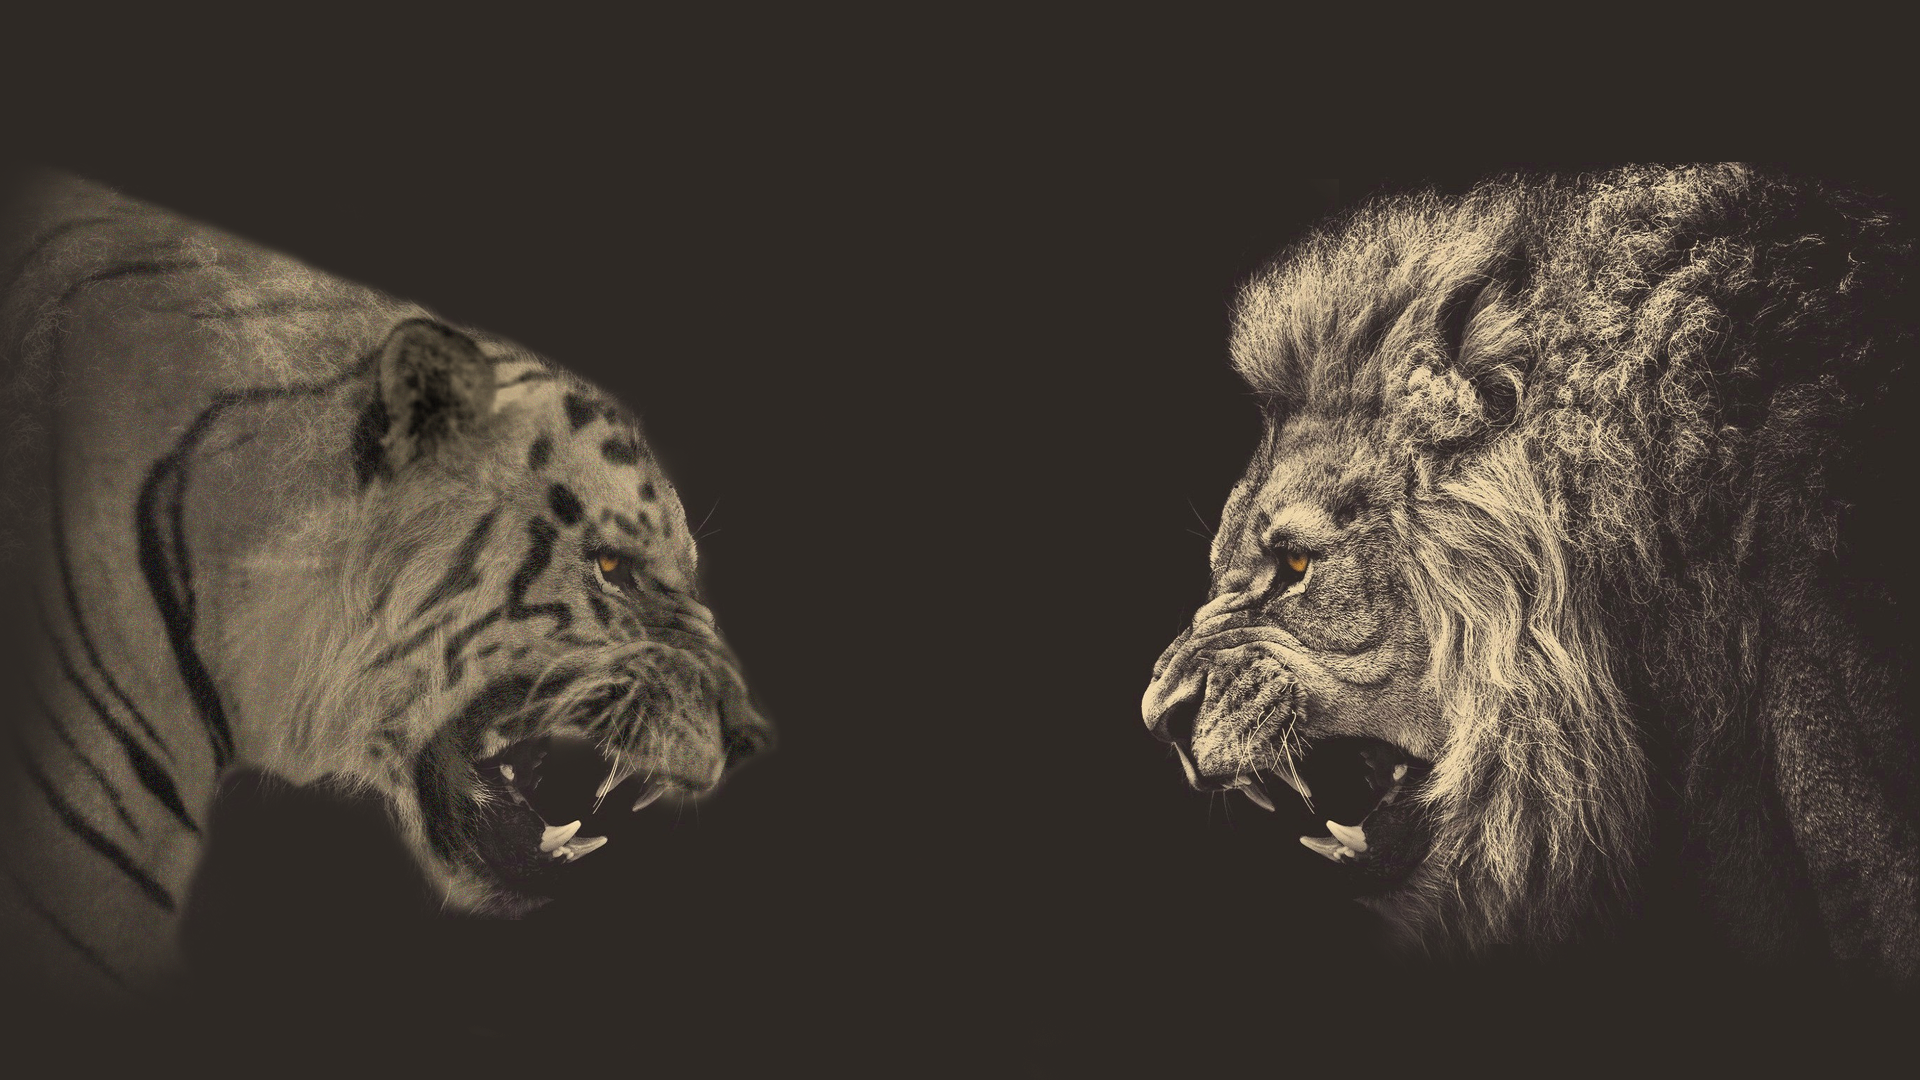 wallpaper meeting a lion and a tiger, gray background » on-desktop